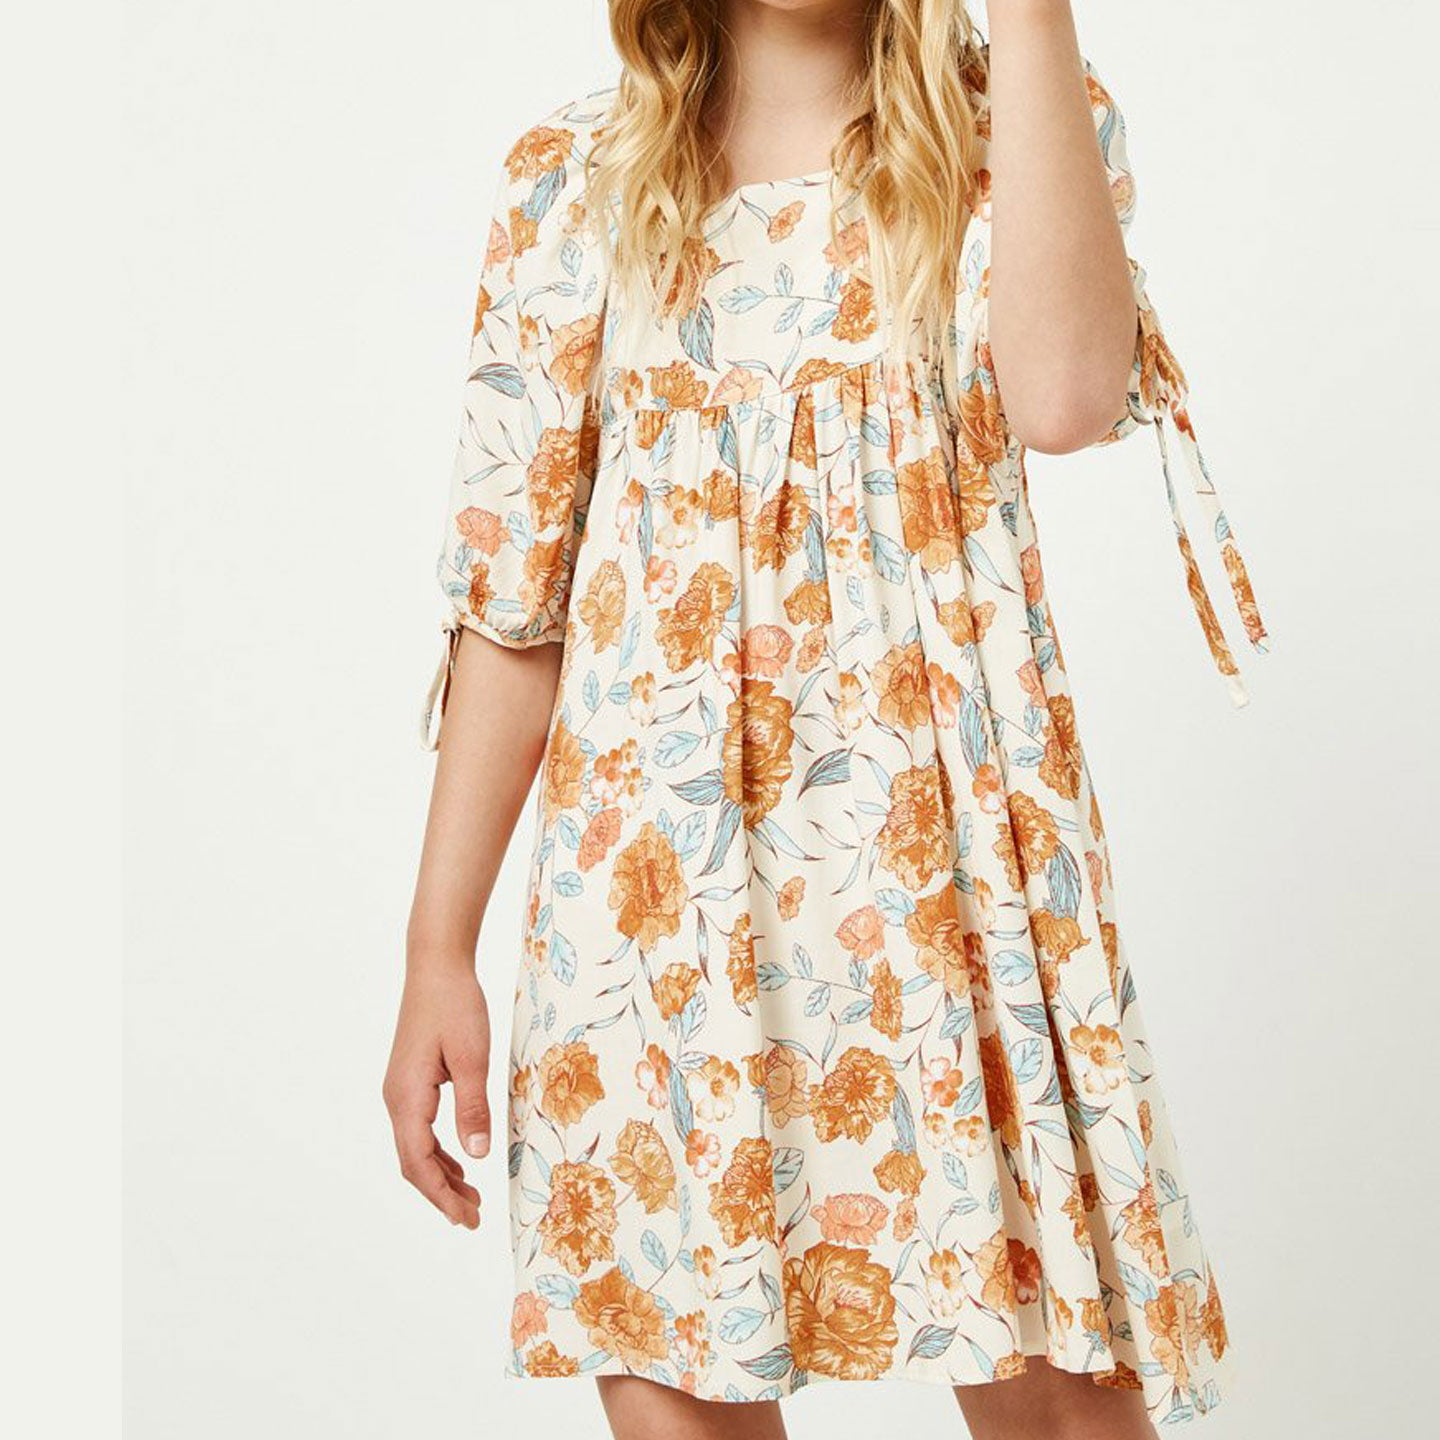 Romantic Floral Tie Sleeve Mini Dress